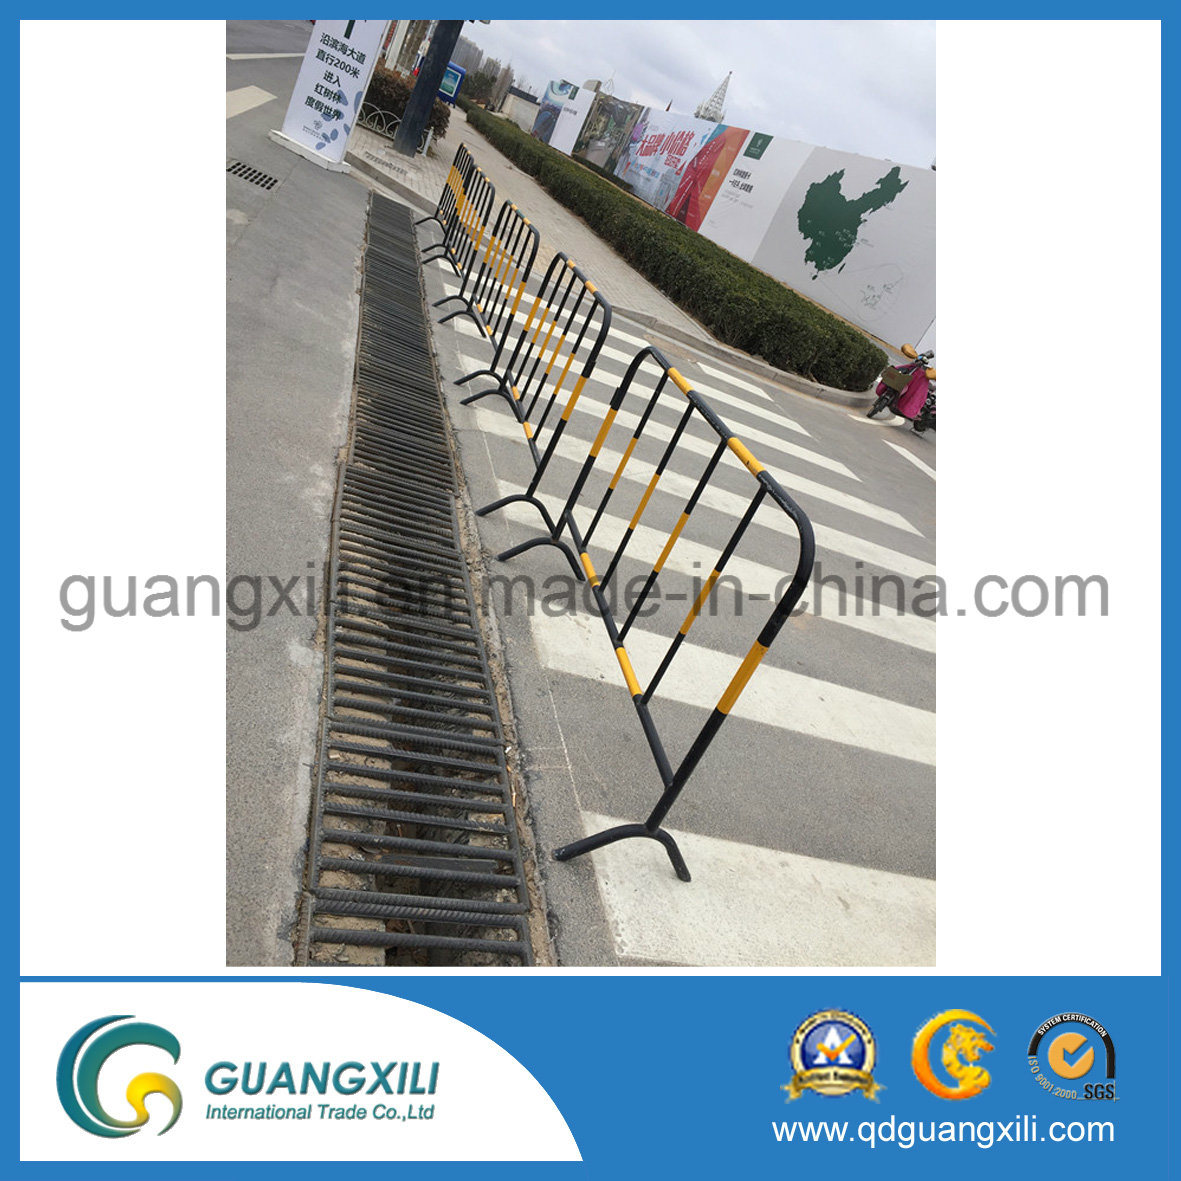 Customized Coated Crowd Control Road Barrier for Warning